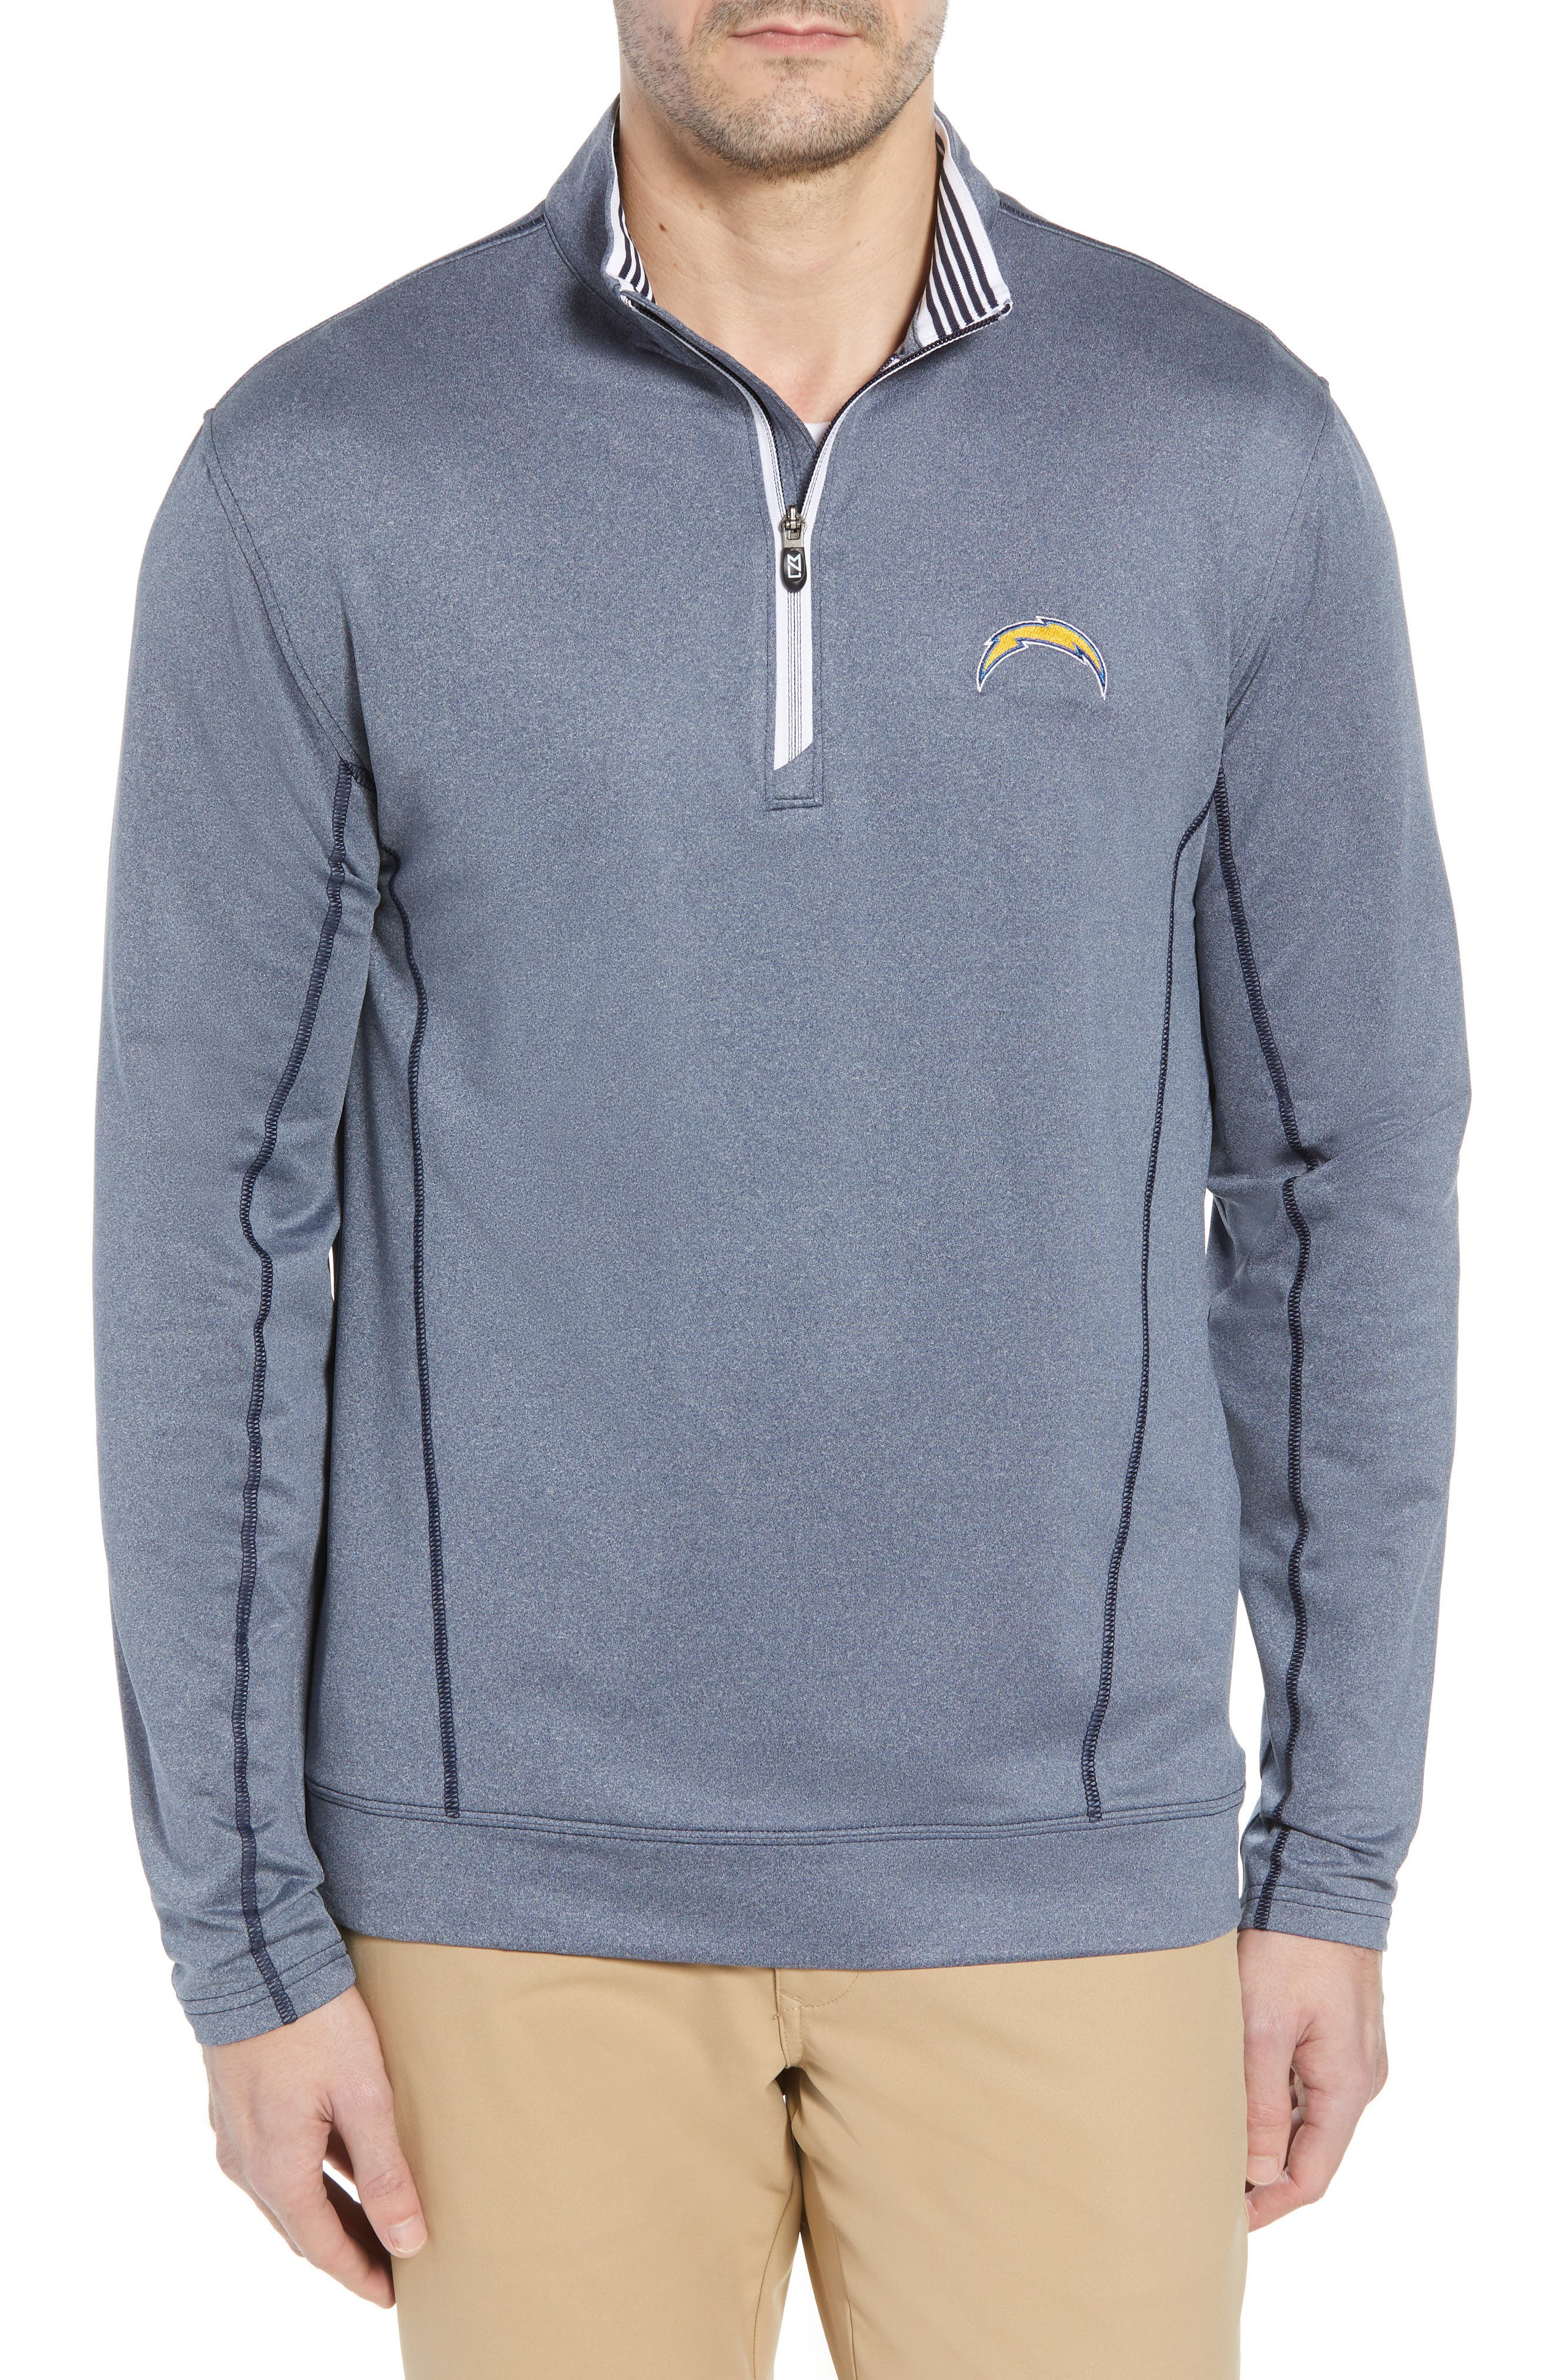 Endurance Los Angeles Chargers Regular Fit Pullover,                         Main,                         color, LIBERTY NAVY HEATHER